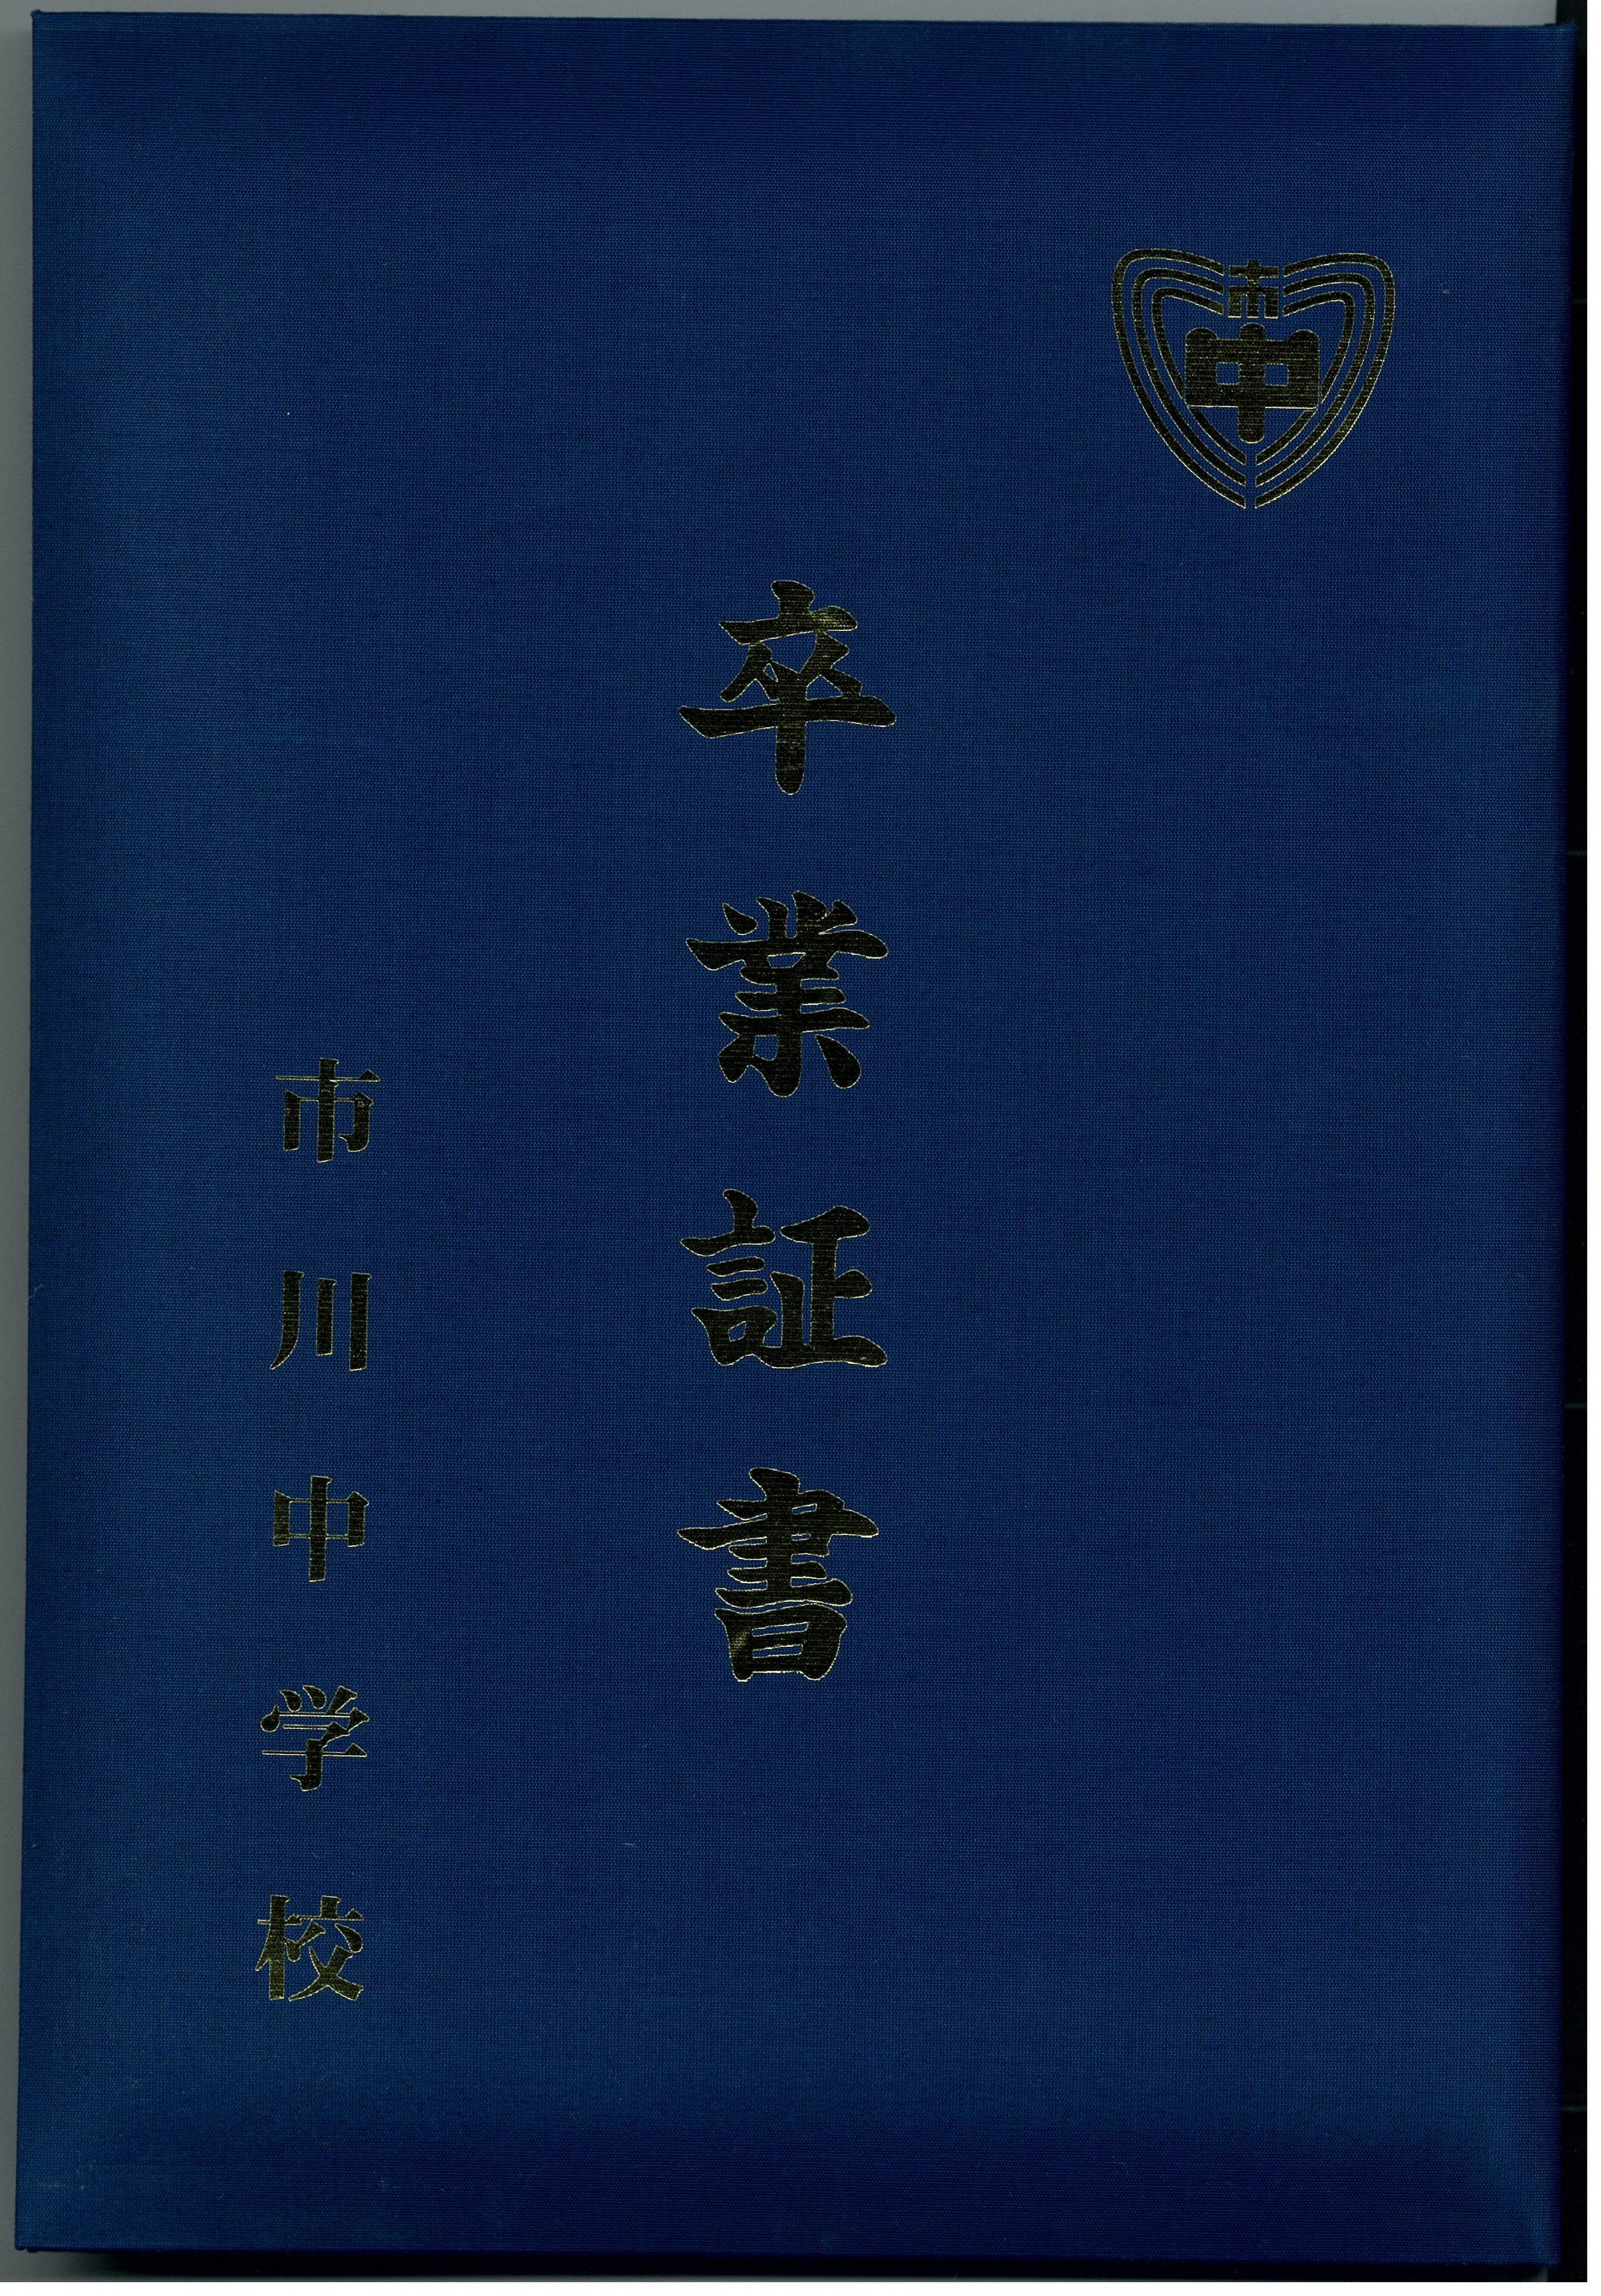 Diploma cover of Junior high school in Japan